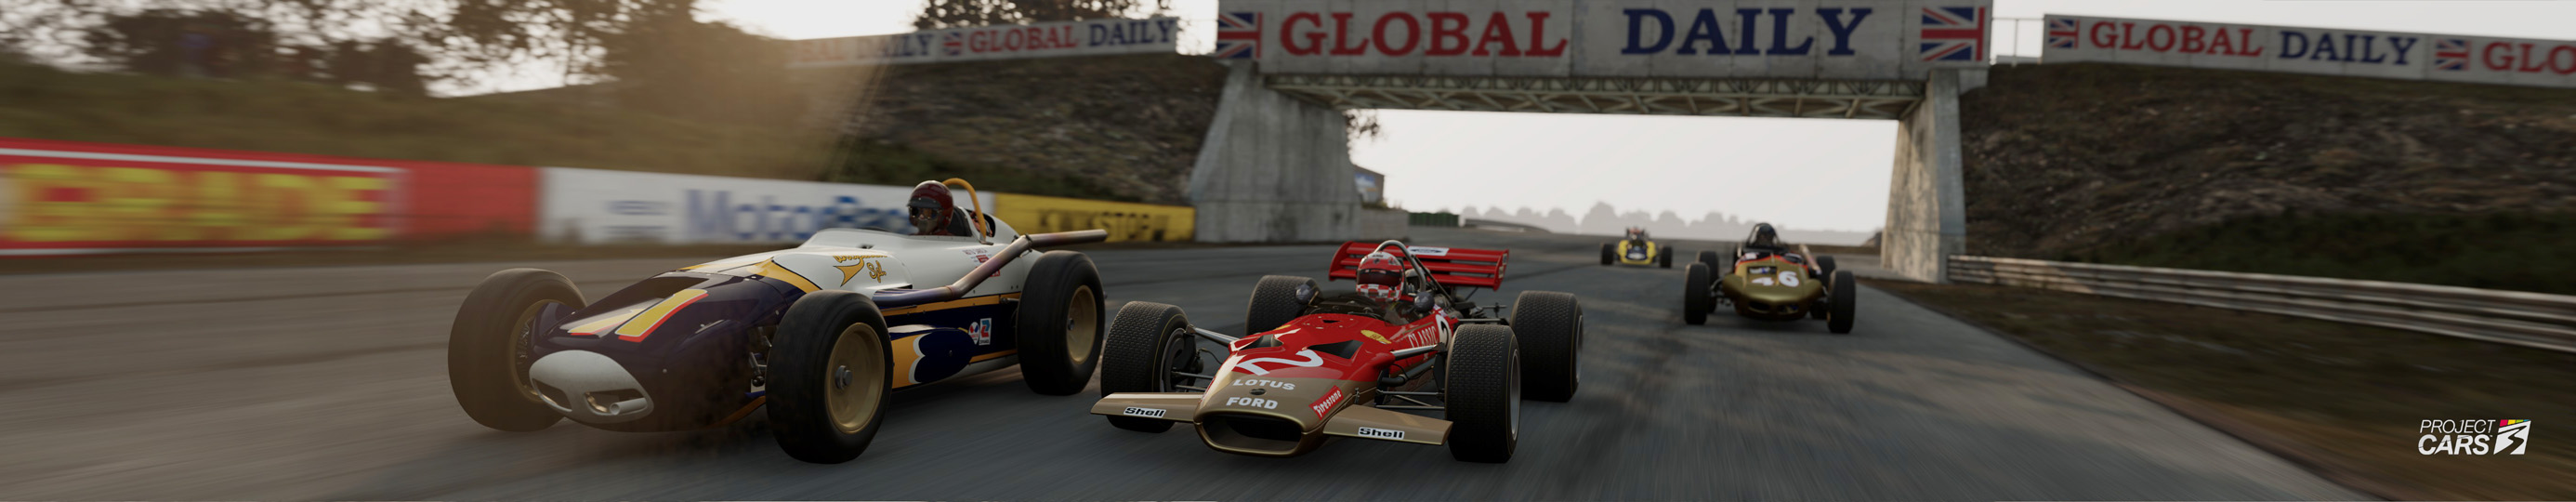 3 PROJECT CARS 3 LOTUS 49C at SILVERSTONE CLASSIC GP crop copy.jpg